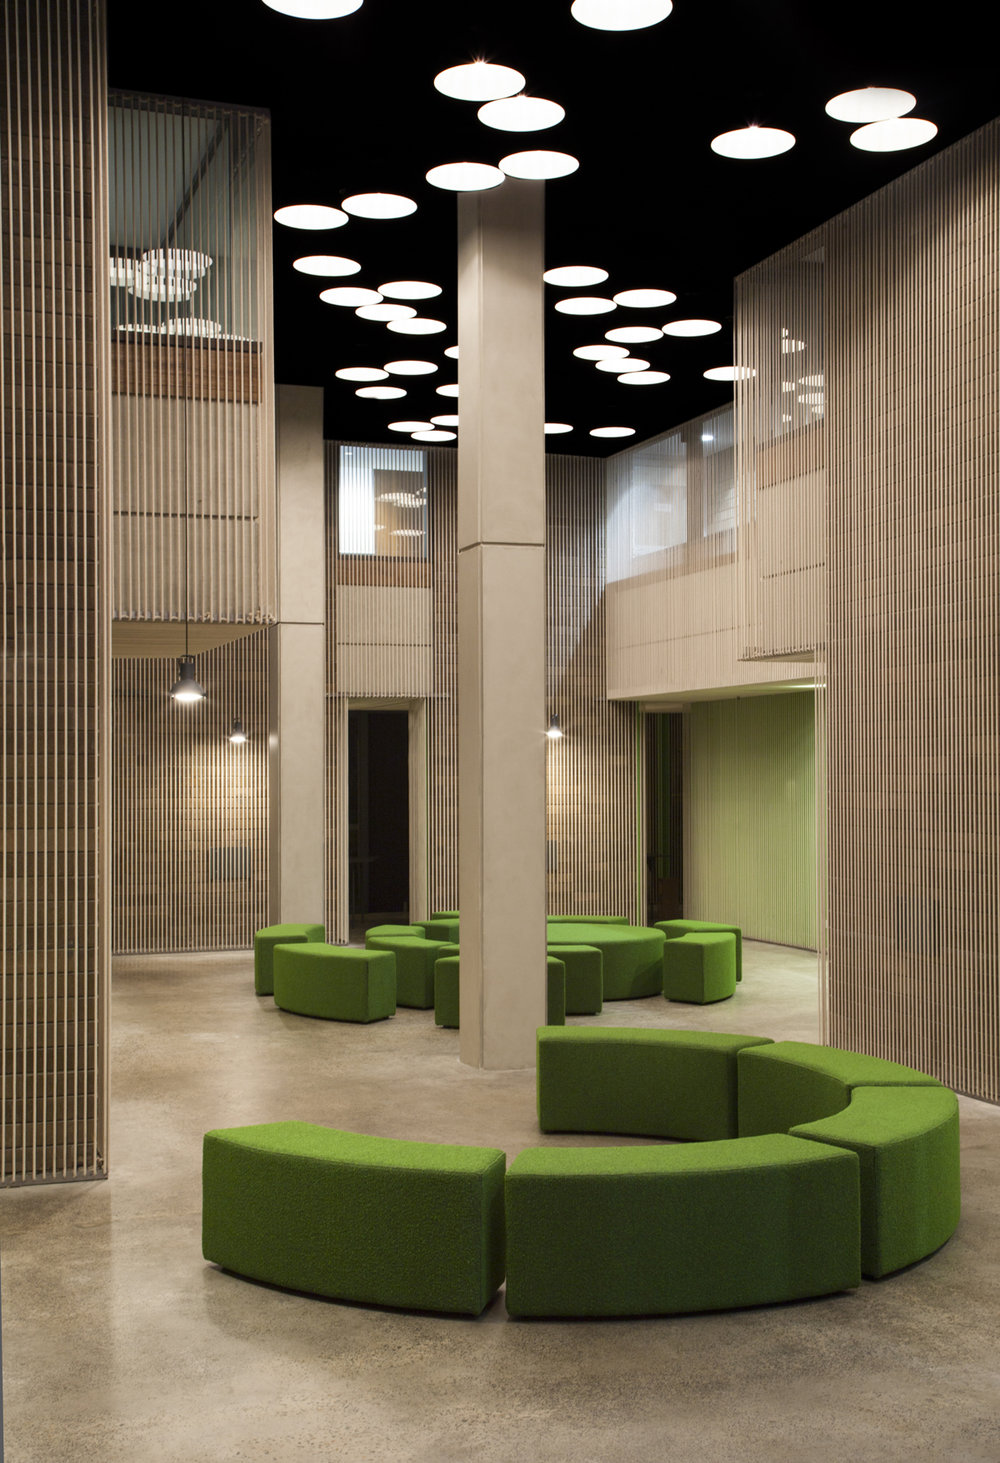 THE WINE QUARTER      This fit-out for Endeavour Drinks Group creates a new multipurpose events space for 500 staff  within a heritage-listed building in Surry Hills that was originally designed for Readers Digest. The project makes explicit the idea of the interior  fit-out as distinct and separable from the architecture, in recognition of the fact that tenants and functions will change over time. Previous additions were removed and the heritage brickwork was carefully restored. A lightweight, tensioned cotton cord lining is then introduced to wrap the heritage interior, 'monumentalising' the architecture by emphasising its volumetric features, while lightening the whole space, improving acoustics and screening  first floor office windows. This permeable veil allows views through to the heritage brickwork and detailing, and provides partial concealment of services such as air conditioning, lighting, alarms and sprinklers, while allowing them to operate through it.      Year:   2016   Location:   Surry Hills, NSW   Photography:   Peter Bennetts, Kasia Werstak